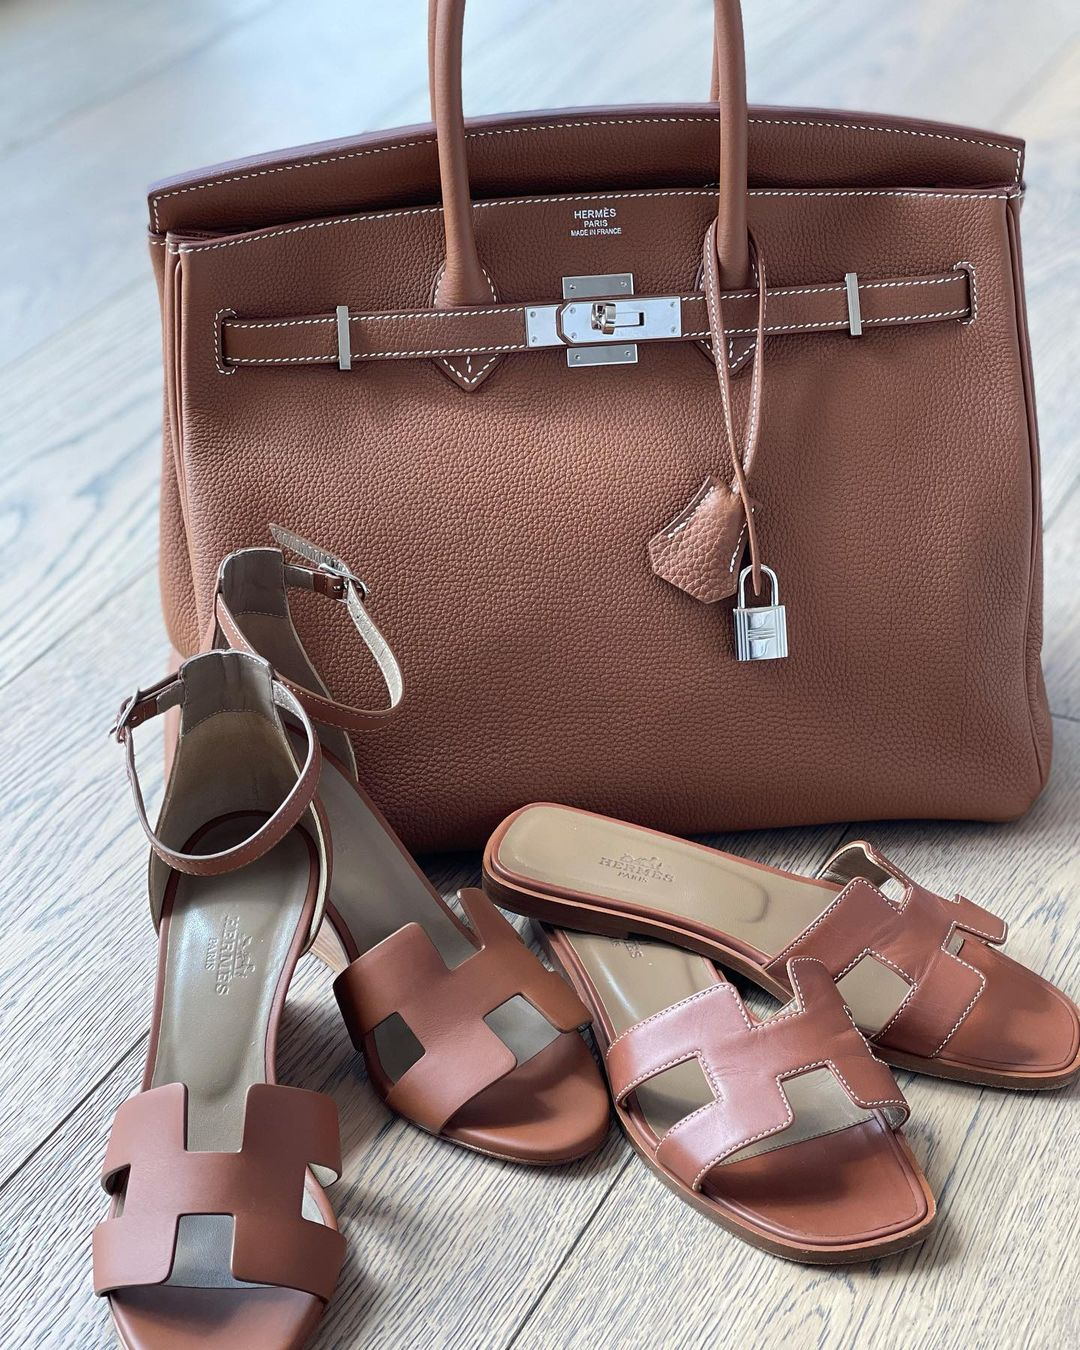 Brown Birkin 35 in Togo leather and silver hardware